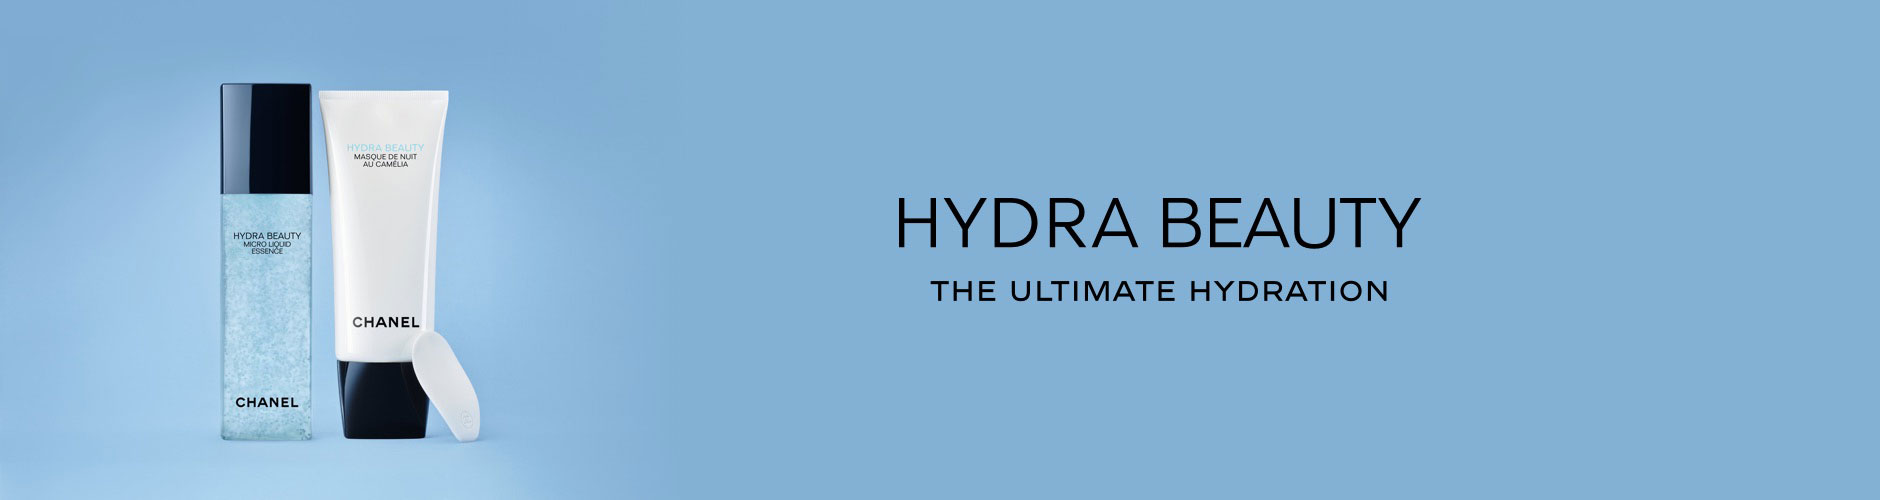 Hydra Beauty - The Ultimate Hydration